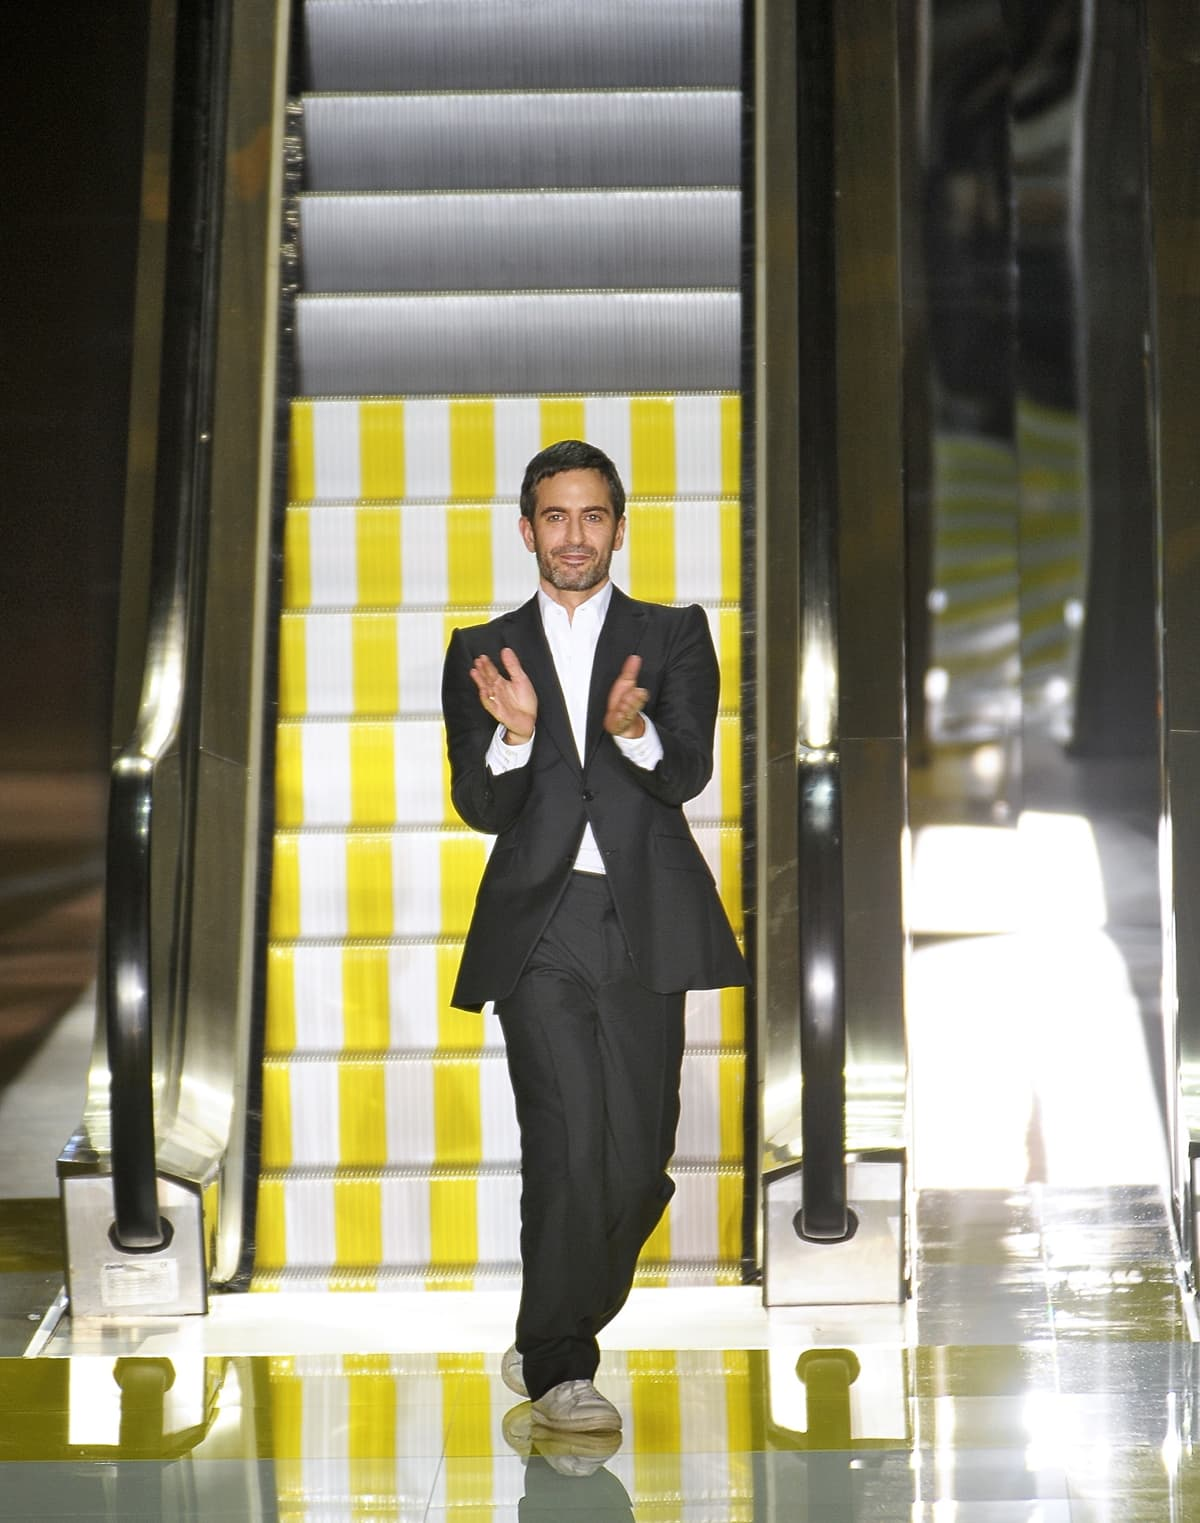 Fashion designer Marc Jacobs acknowledges the applause of the audience after the Louis Vuitton Spring/Summer 2013 show